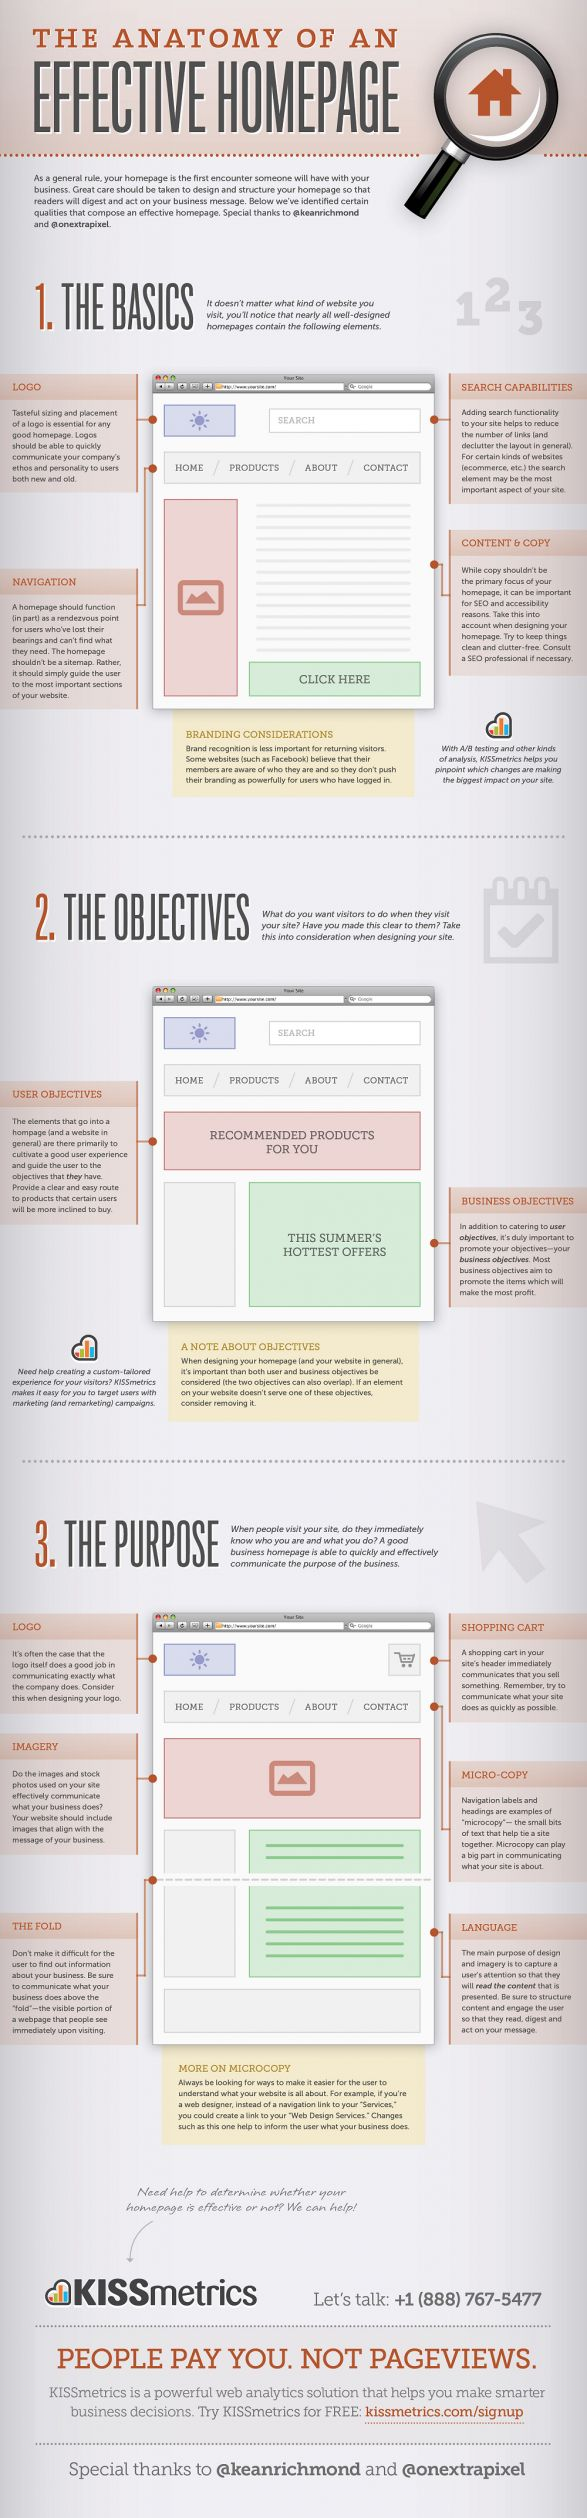 The Anatomy of an Effective Homepage - Via Search Marketing Expo